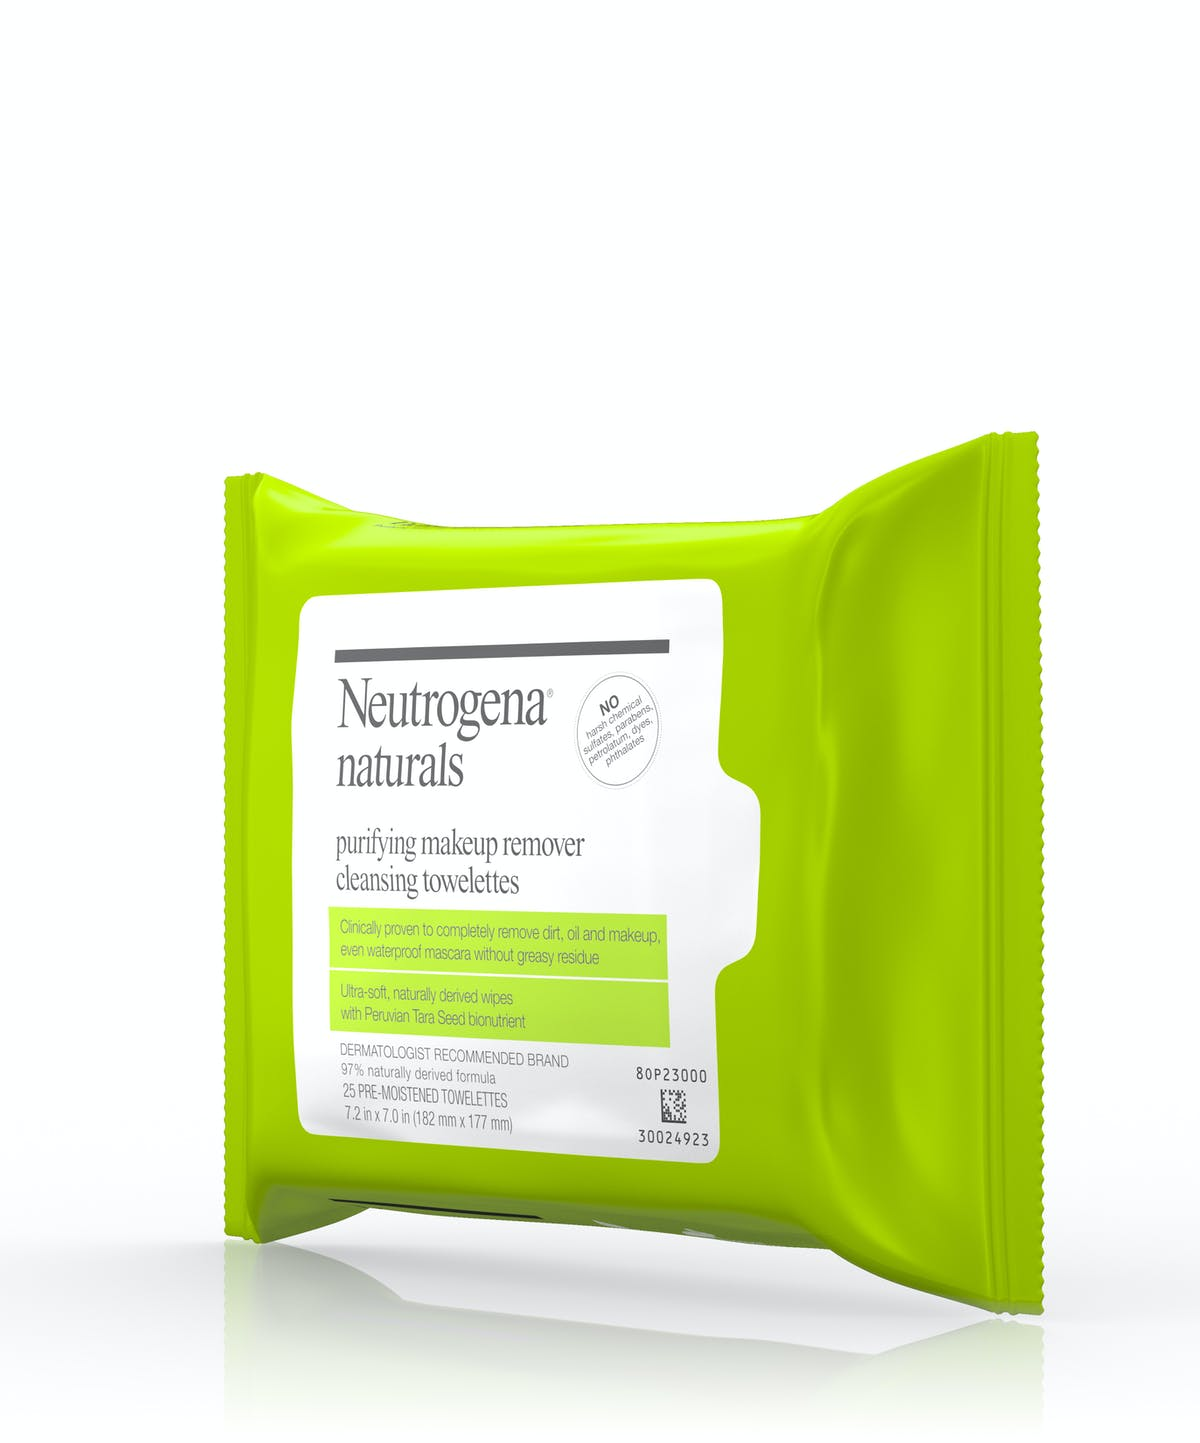 Naturals Purifying Makeup Remover Cleansing Towelettes by Neutrogena #6